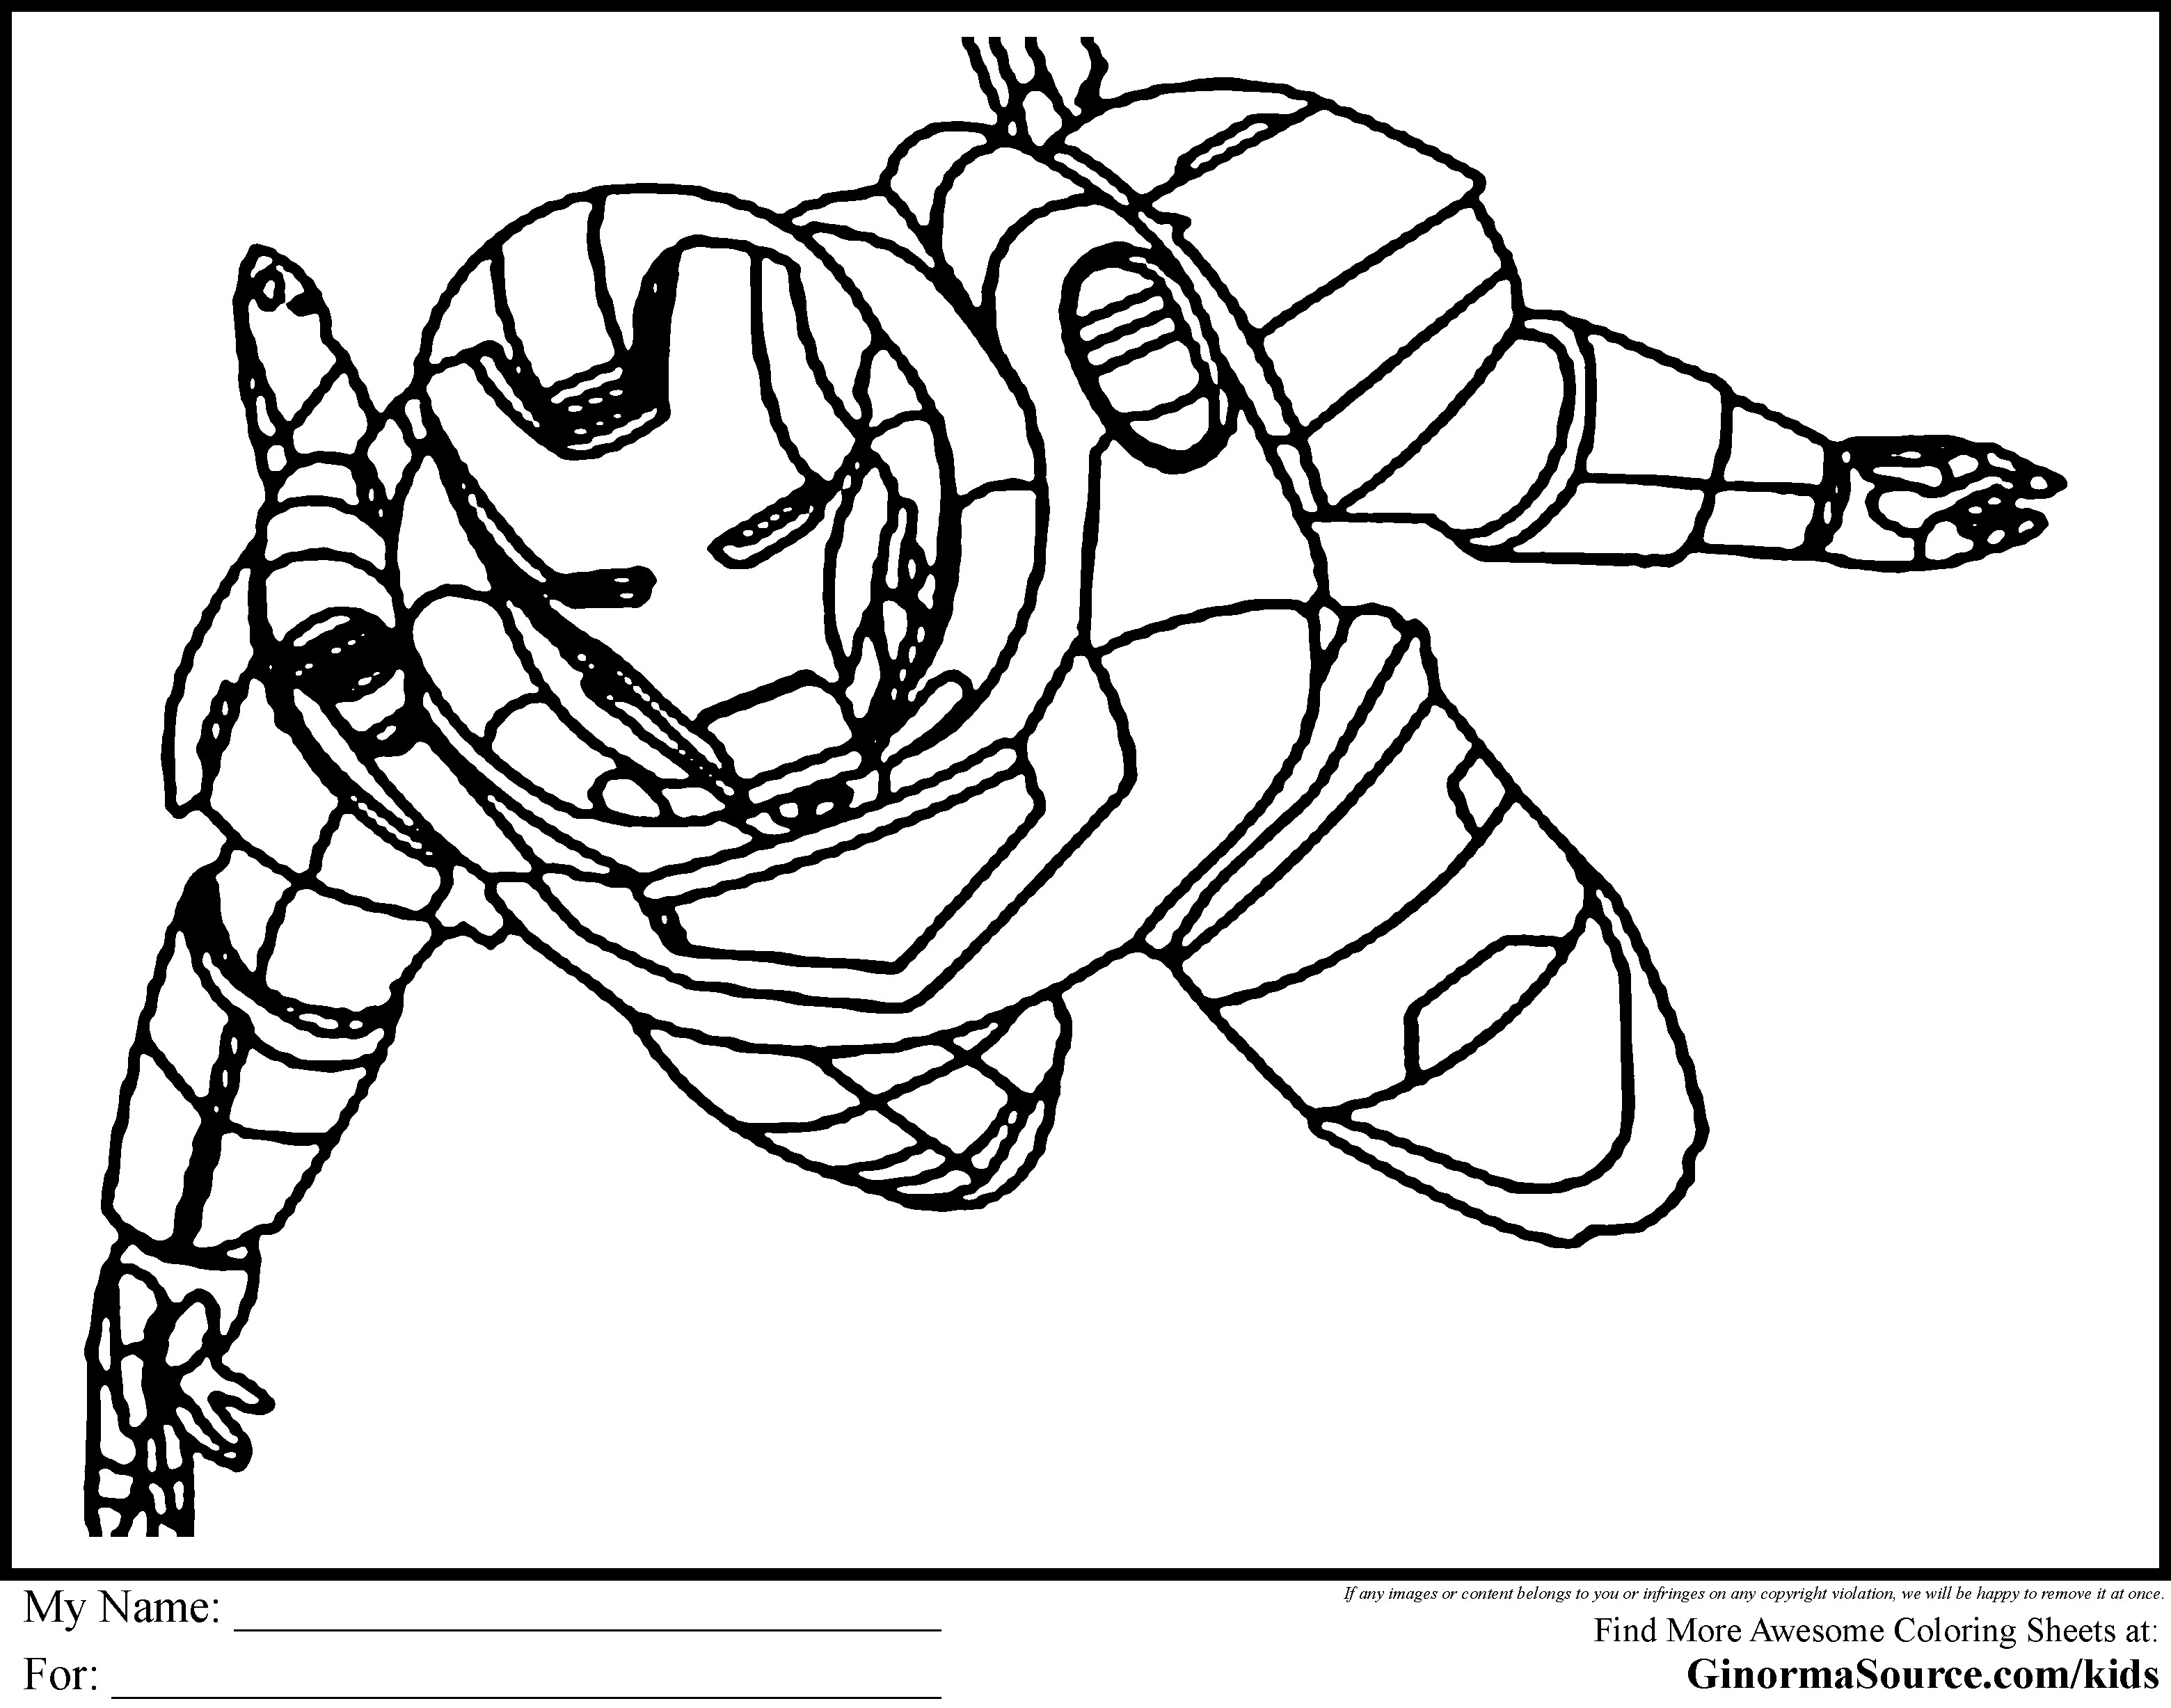 Super Heroes Coloring Page Superhero Coloring Pages Pdf Coloring Home